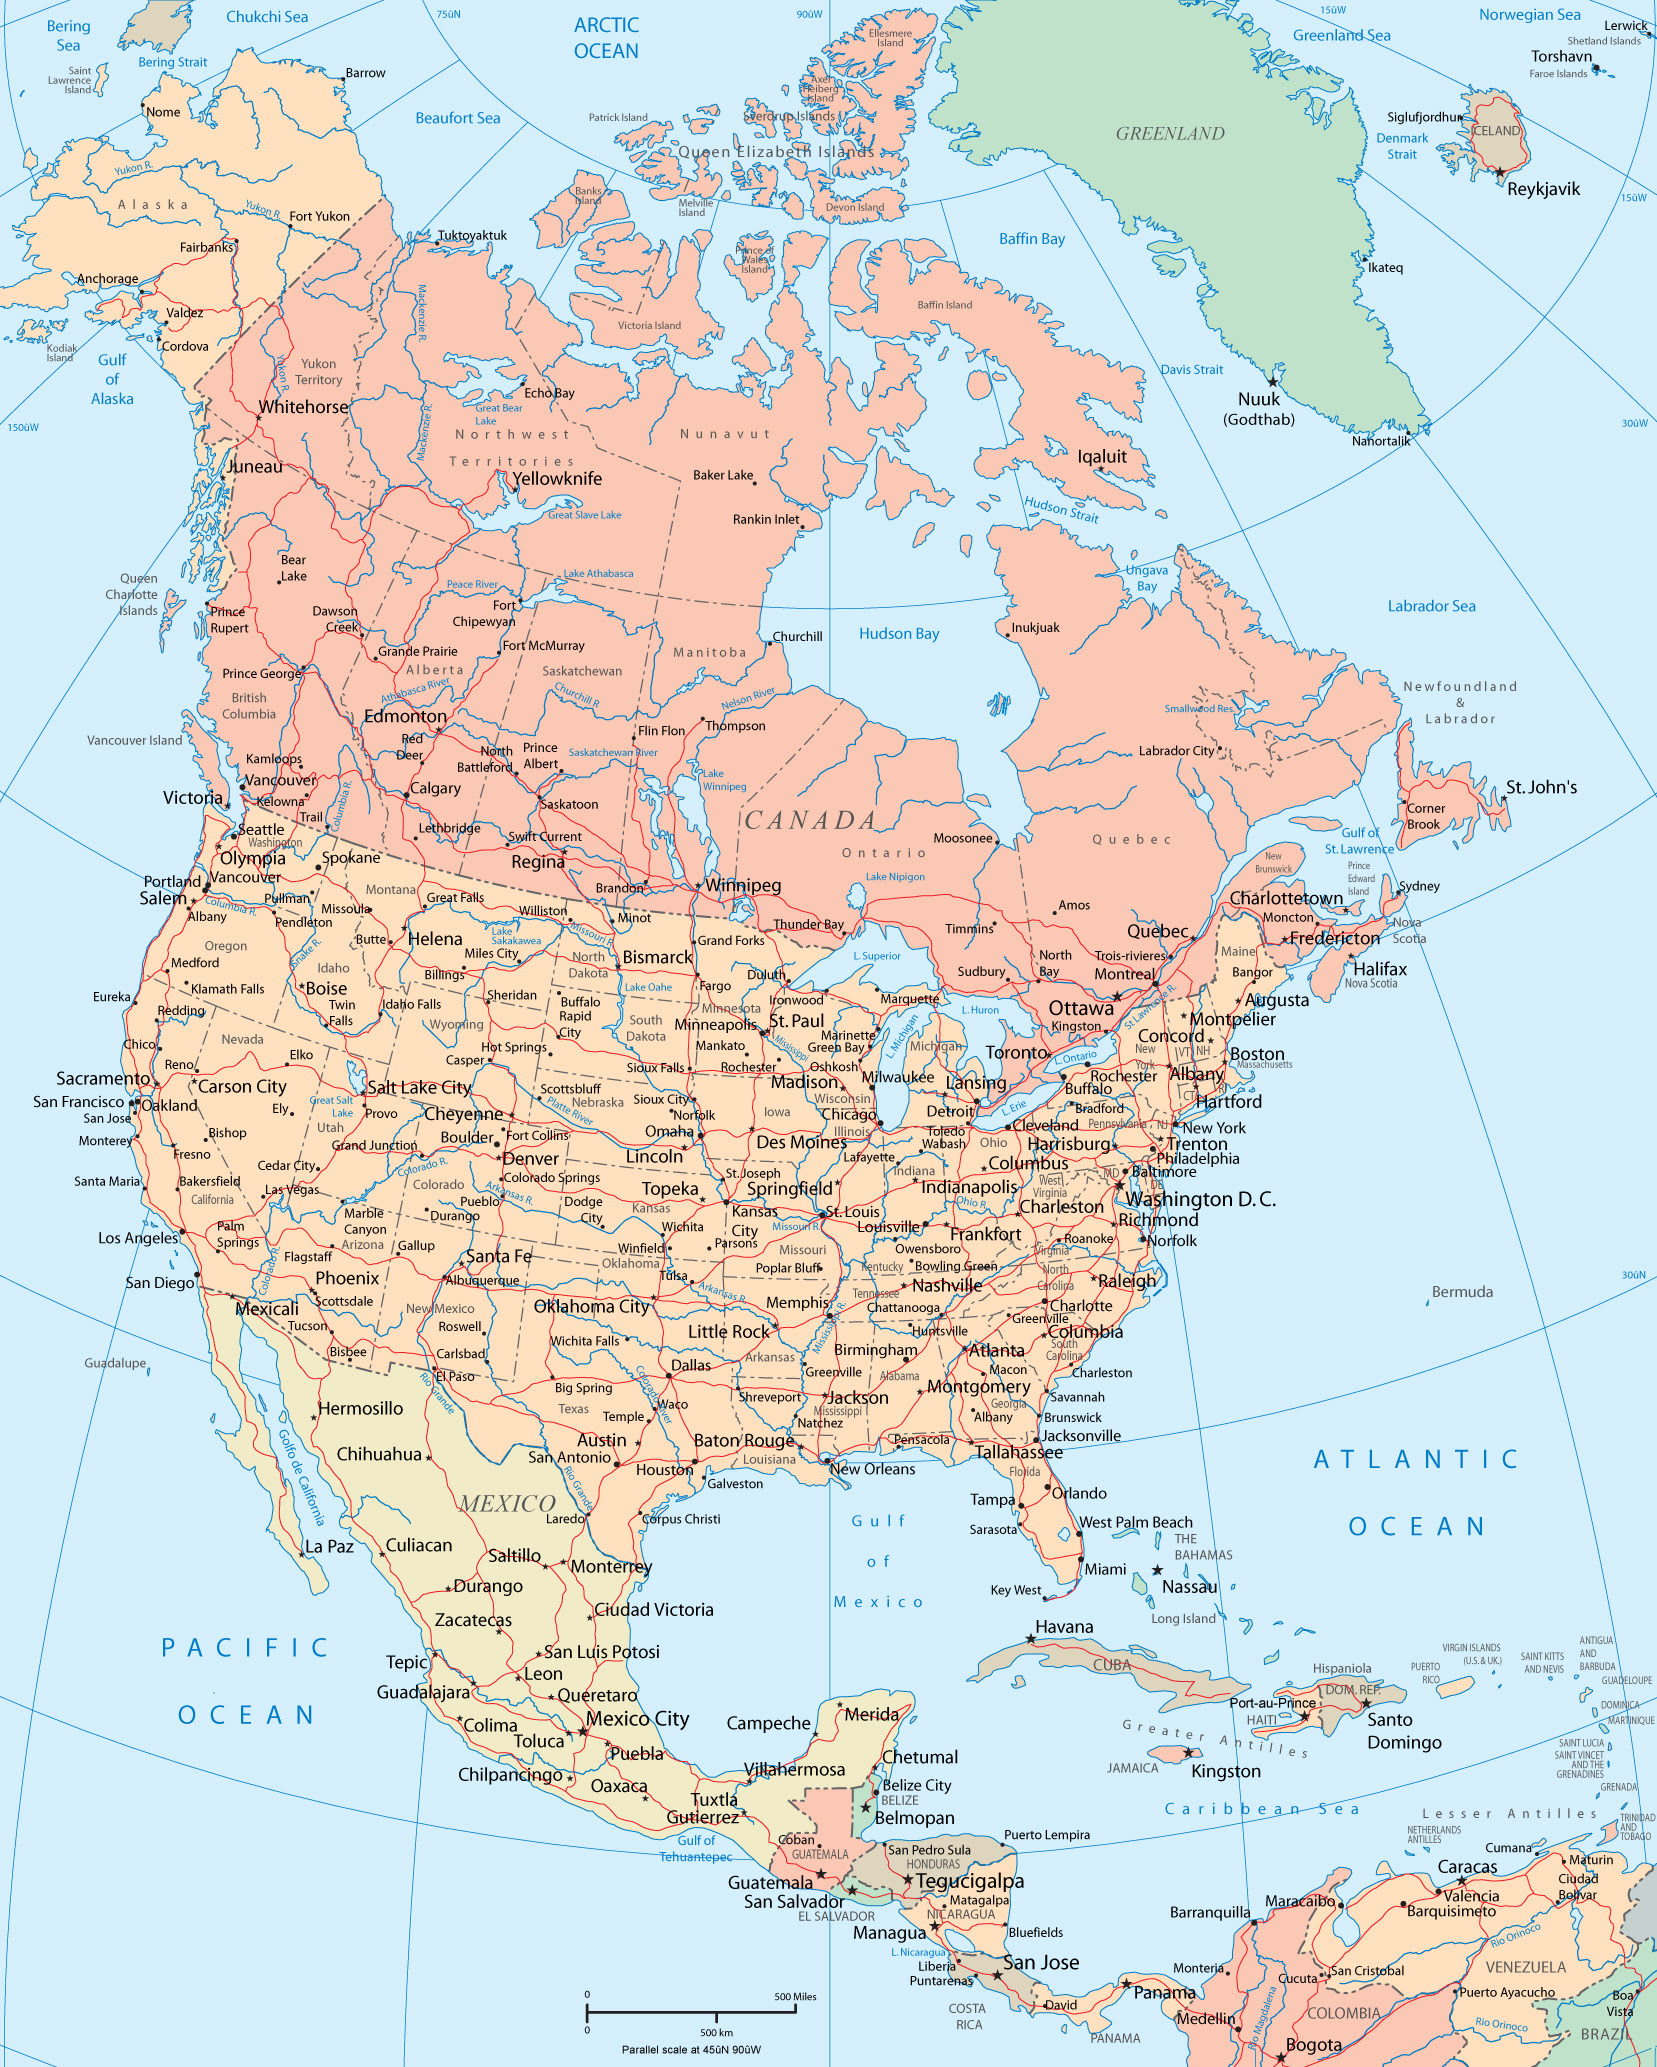 North America Maps Maps of North America OnTheWorldMap.com ... on letter n america, map latin america, map of america, map o america, globe n america, map n orleans, map central america, time zone america,